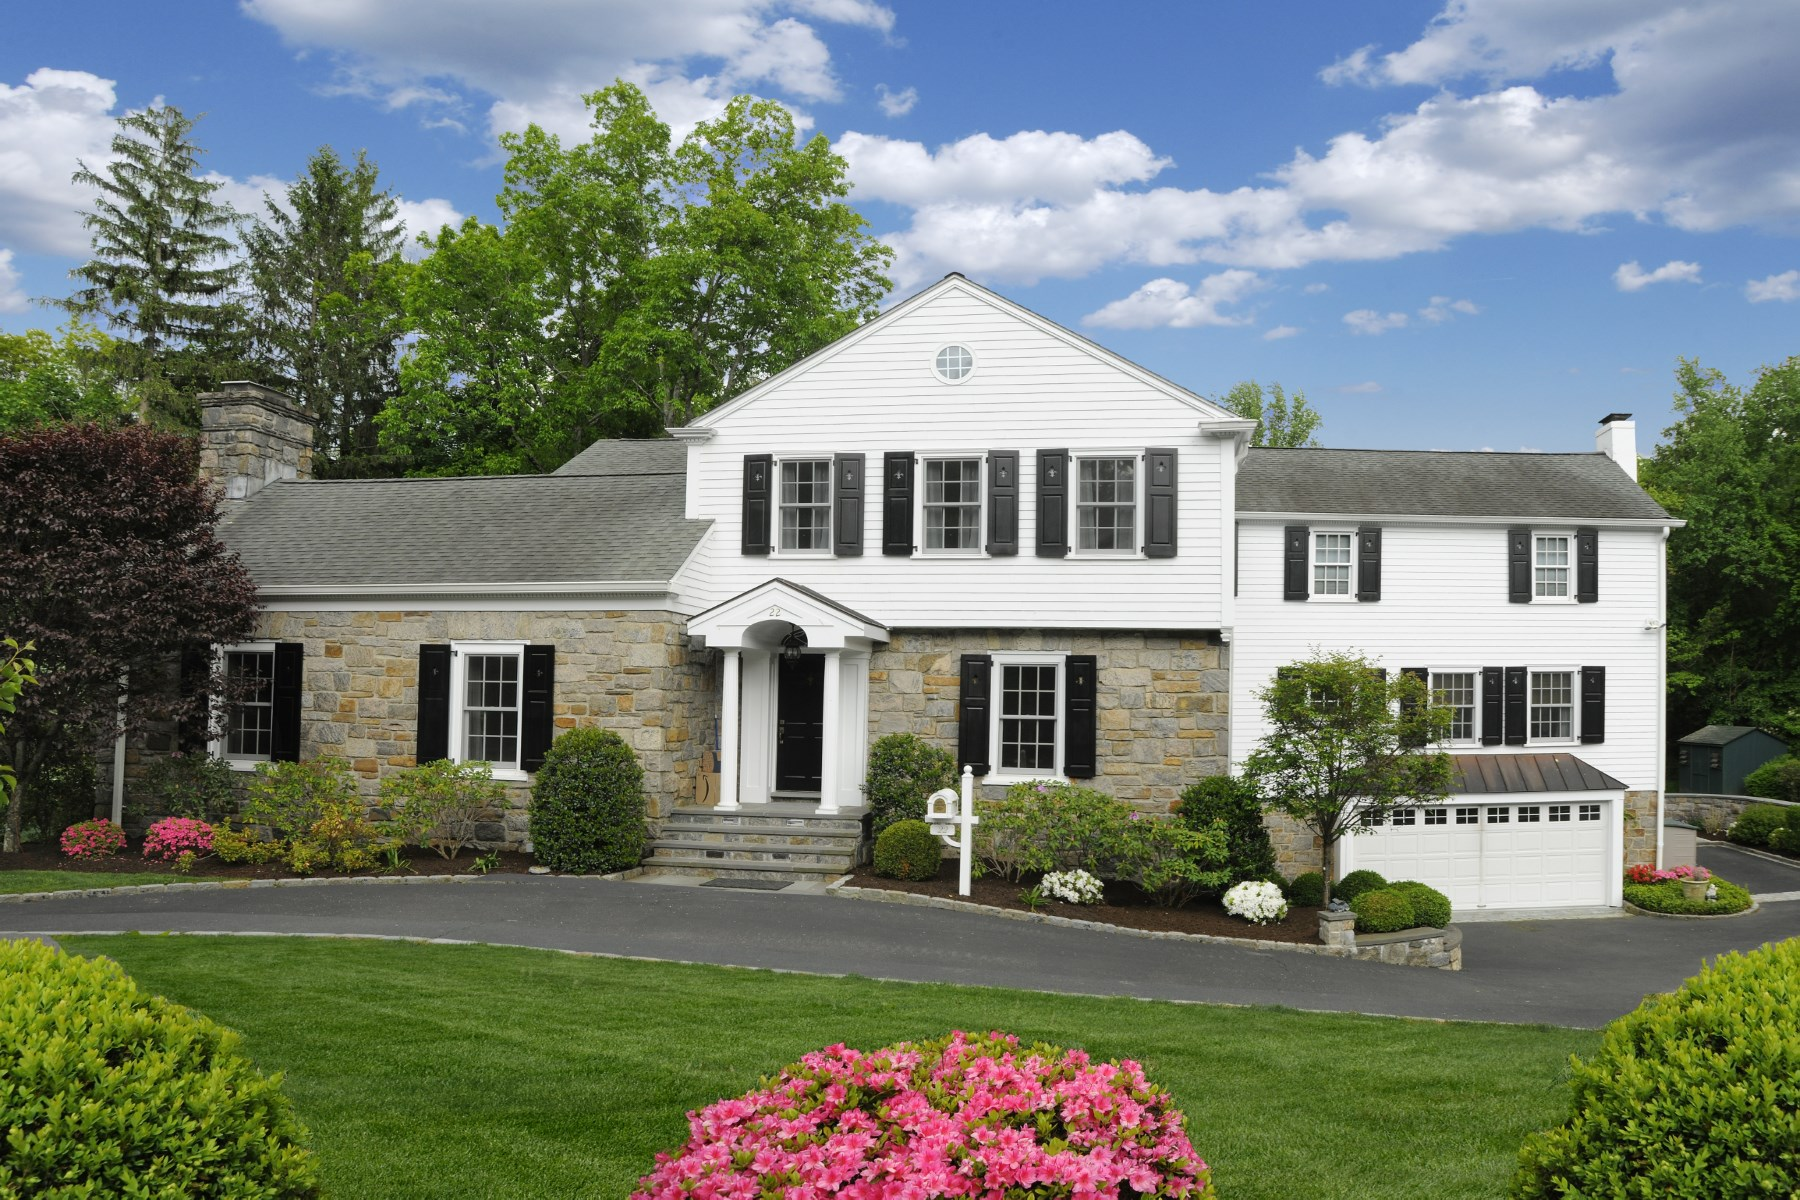 Single Family Home for Sale at 22 Echo Lane South Of Parkway, Greenwich, Connecticut 06830 United States